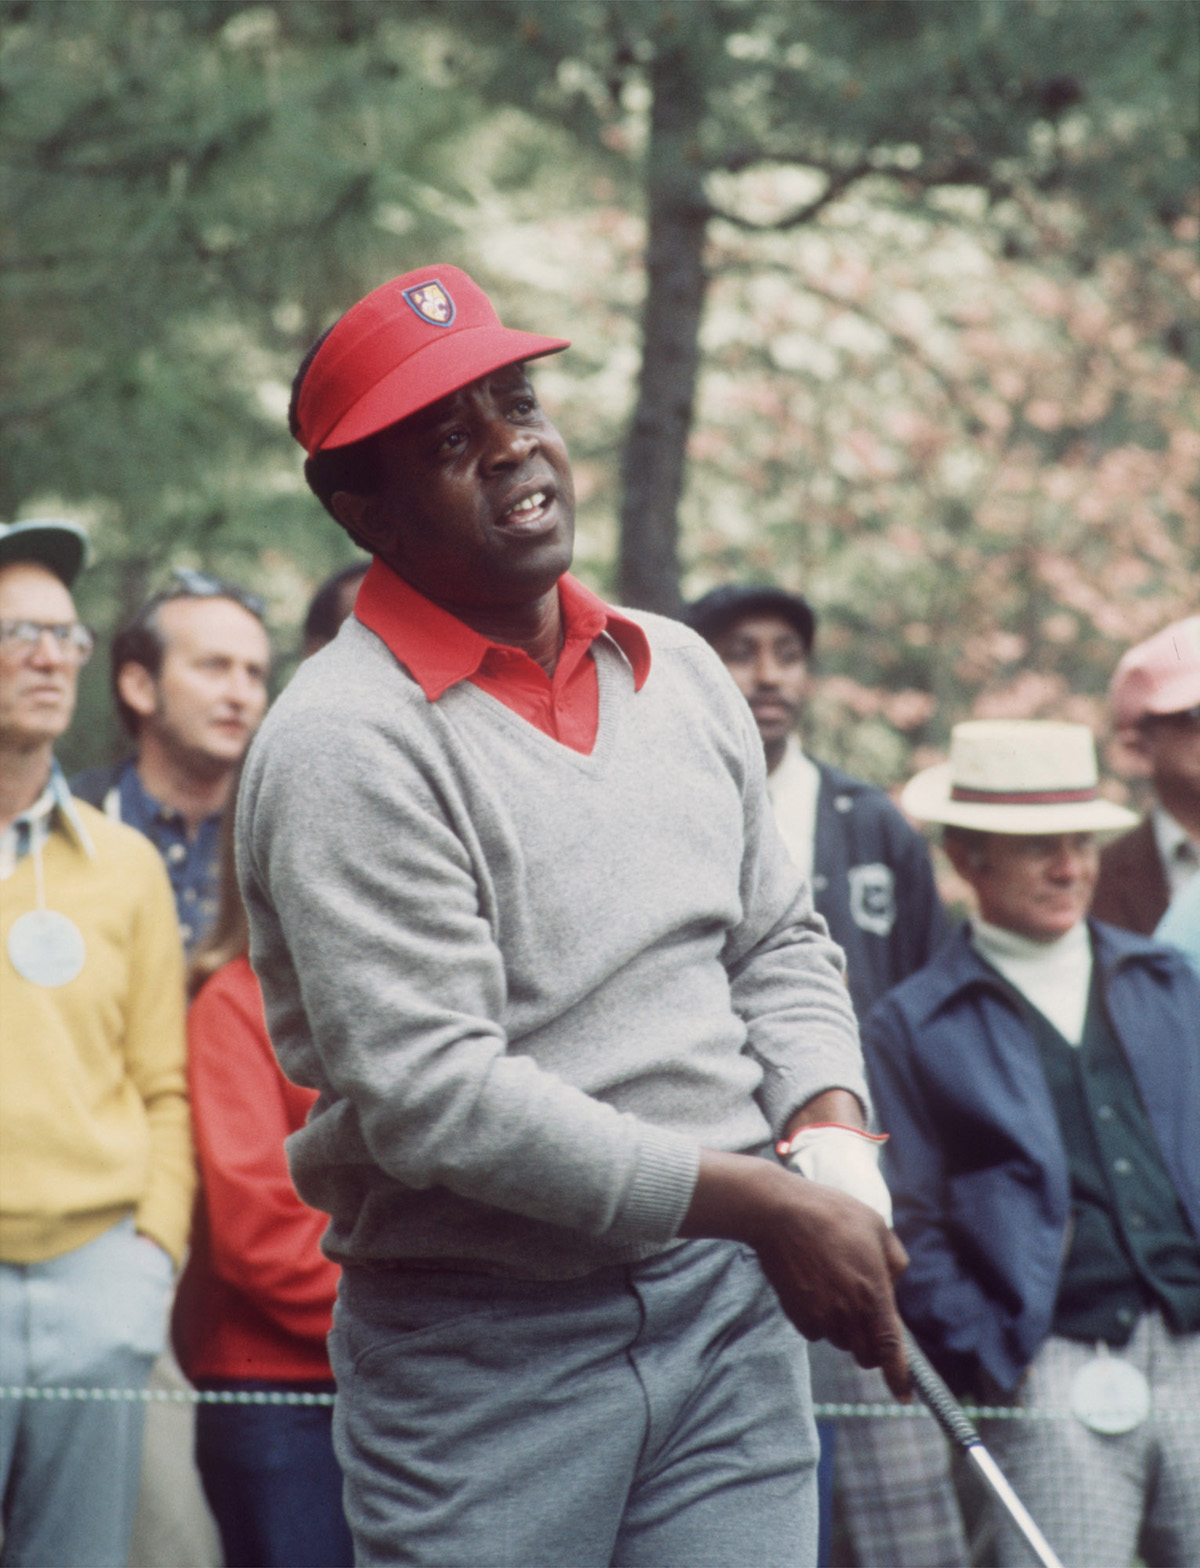 Lee Elder To Join Honorary Starters At 2021 Masters Augusta Announces Hbcu Scholarships In His Name 2021 Masters